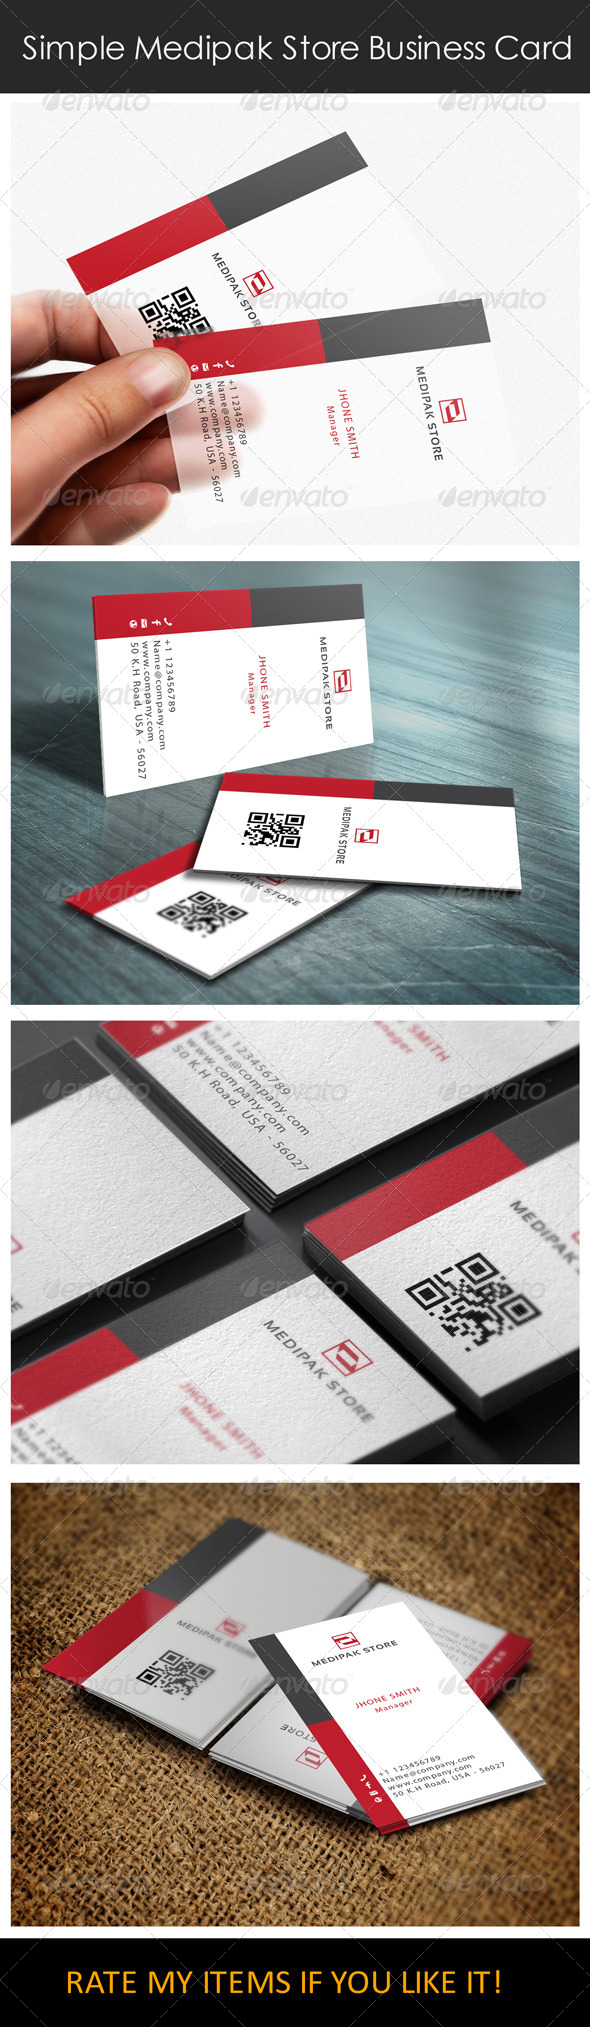 Simple Medipak Store Logo and Business Card - Corporate Business Cards